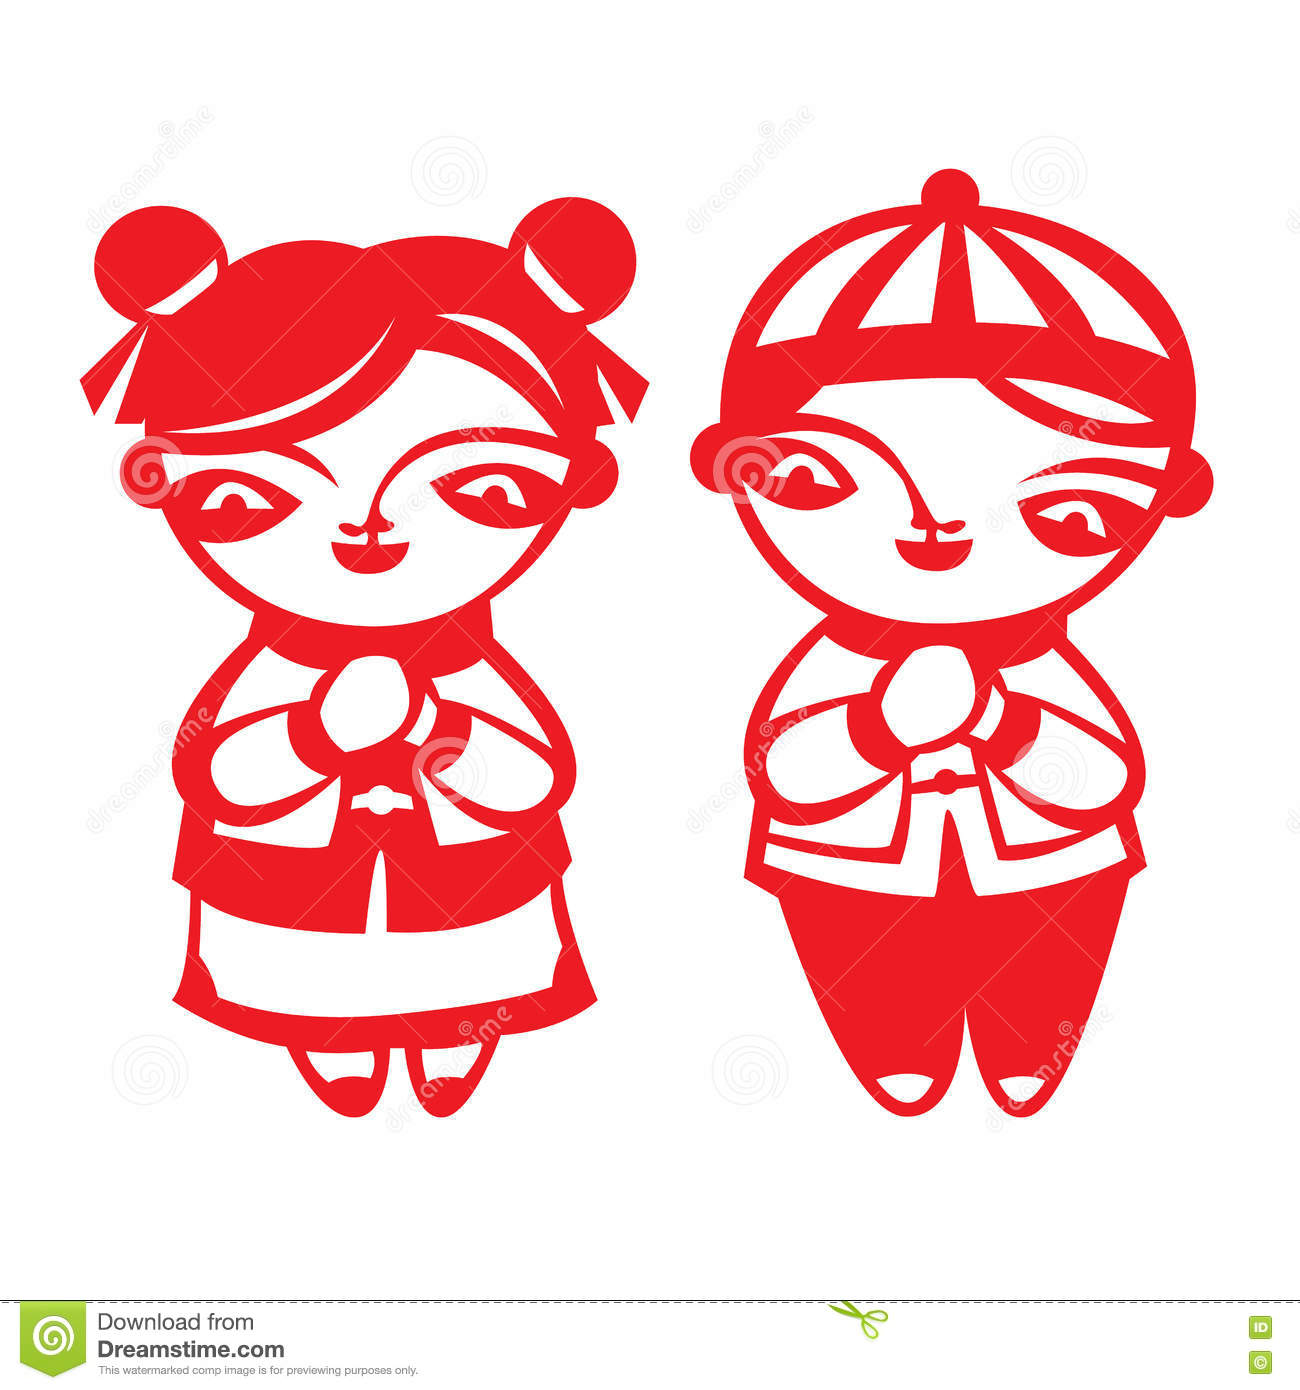 Red Paper Cut Chinese Boy And Girl Symbol Isolate On White